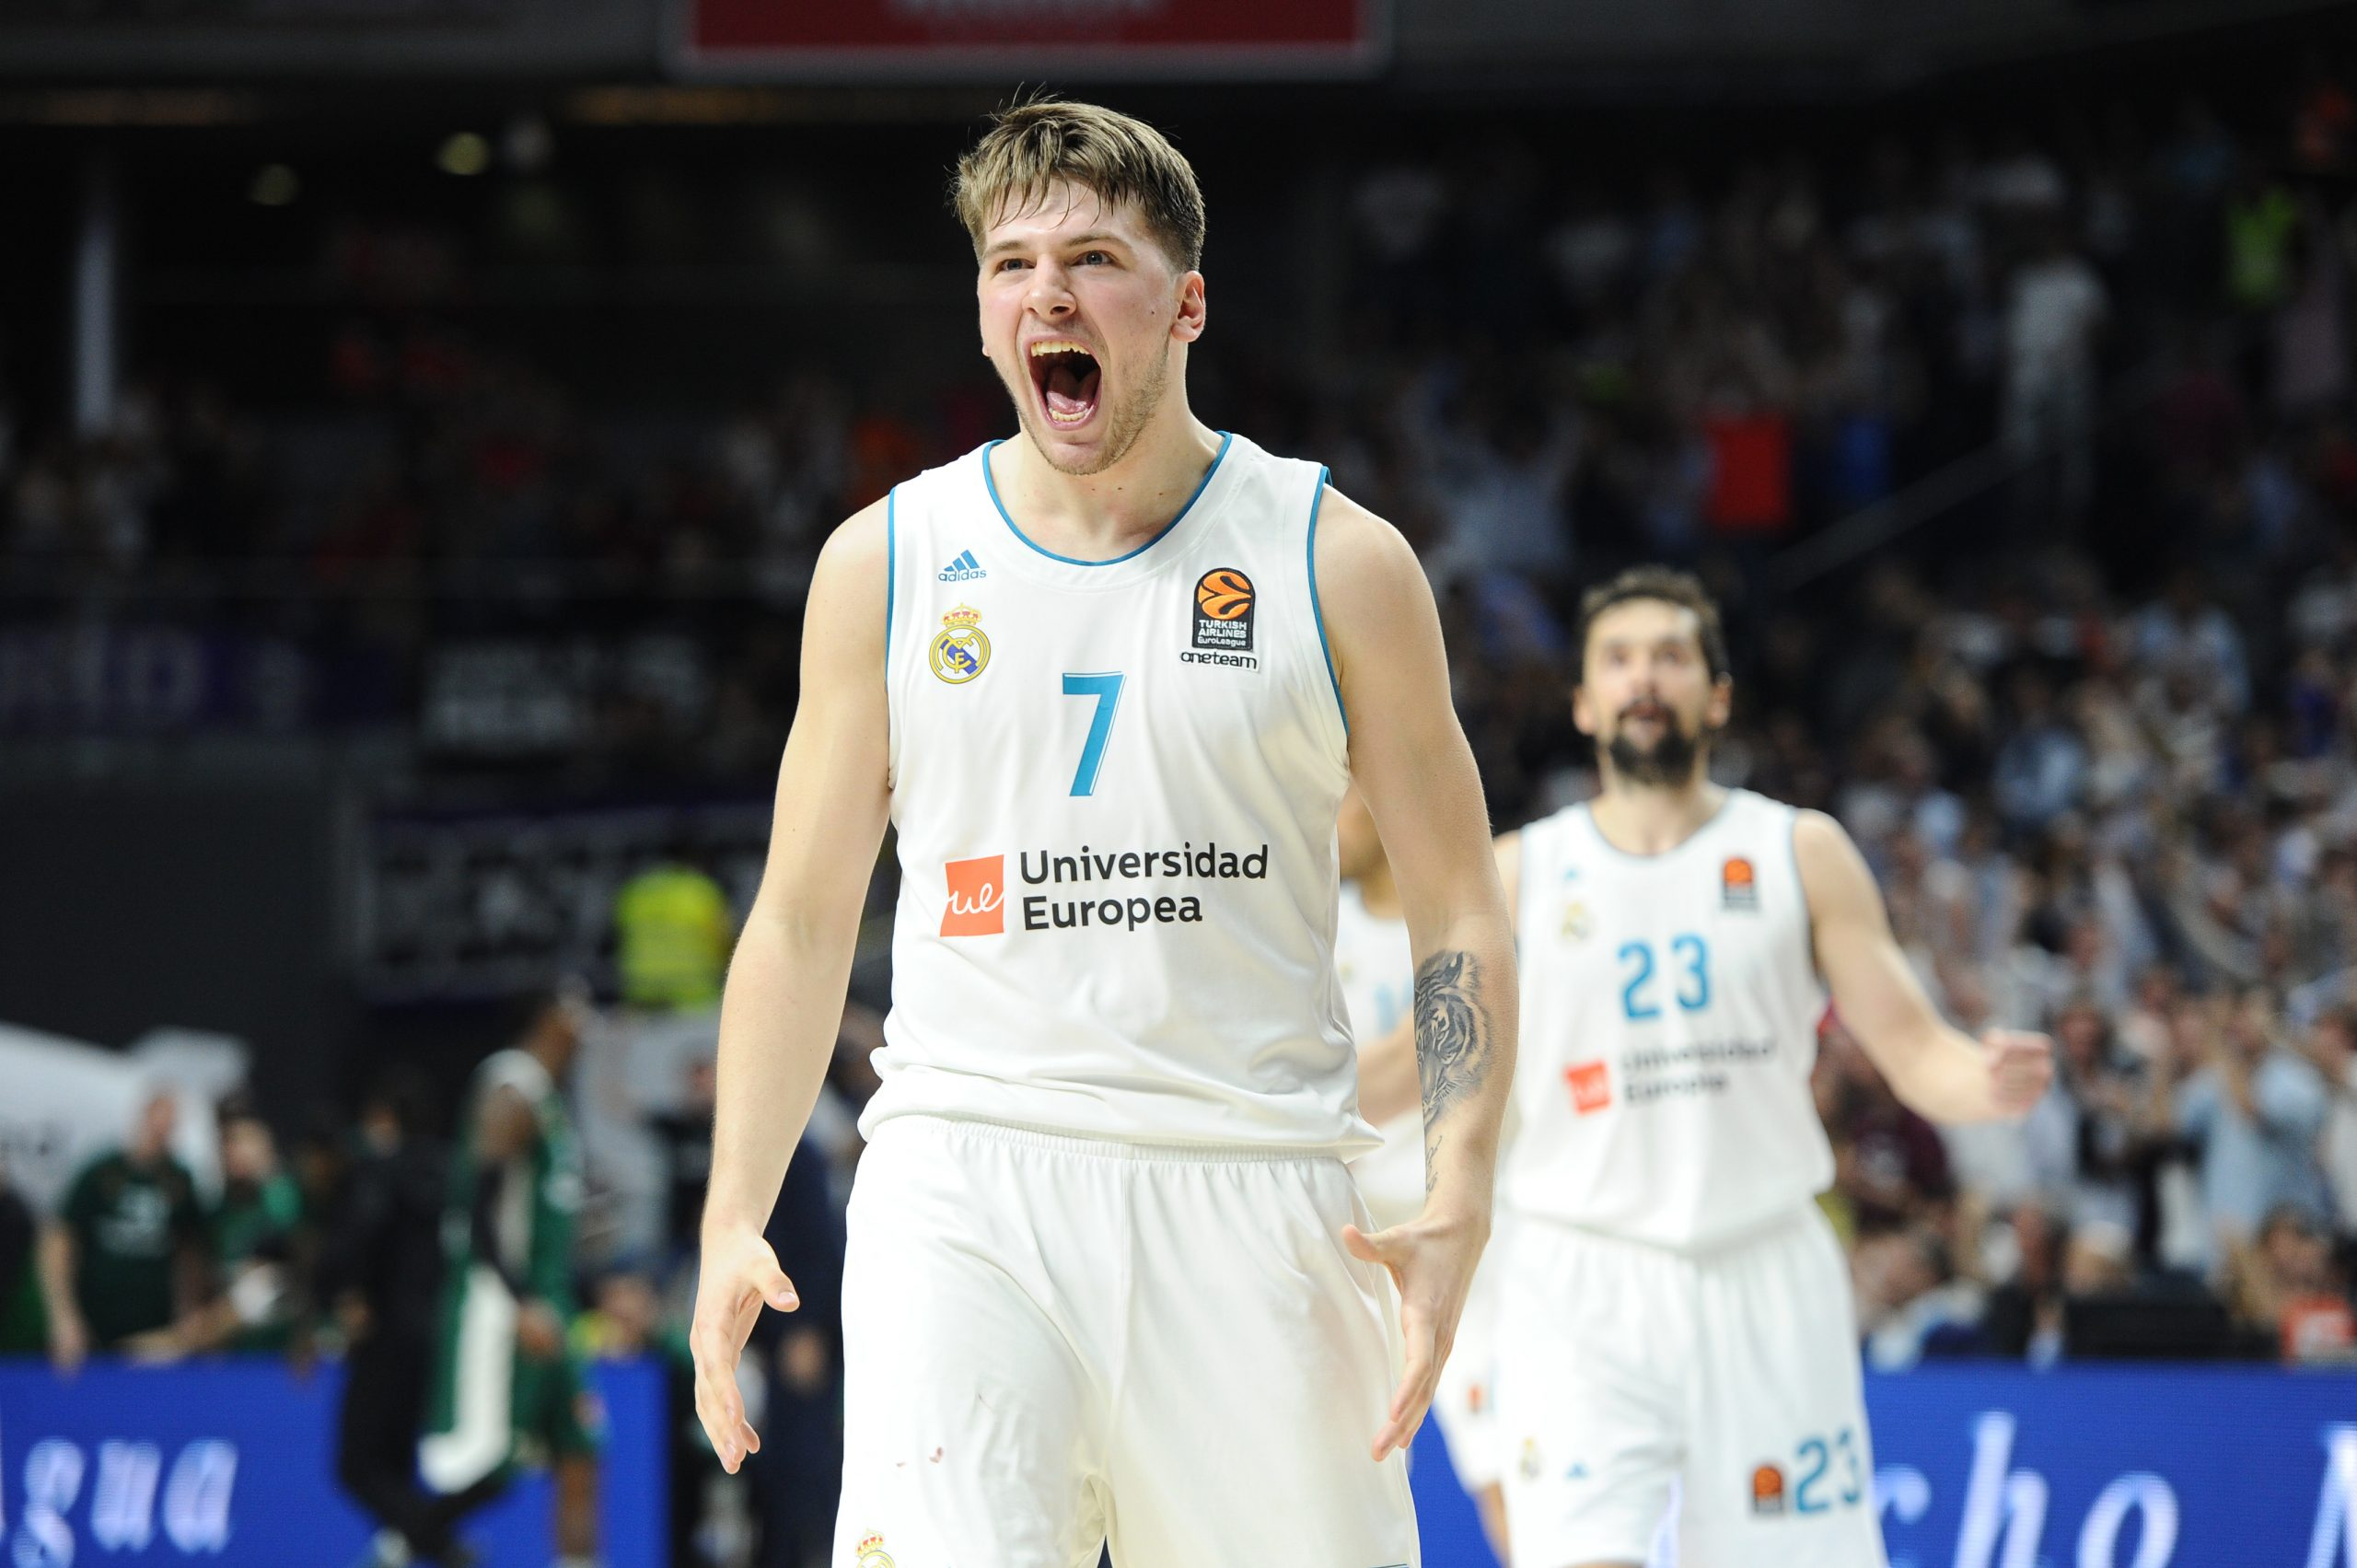 MADRID, SPAIN - APRIL 27: Luka Doncic, #7 guard of Real Madrid during the 2017/2018 Turkish Airlines Euroleague Play Off Leg Four between Real Madrid v Panathinaikos Superfoods Athens at WiZink Center on April 27, 2018 in Madrid, Spain. (Photo by Sonia Canada/Getty Images)